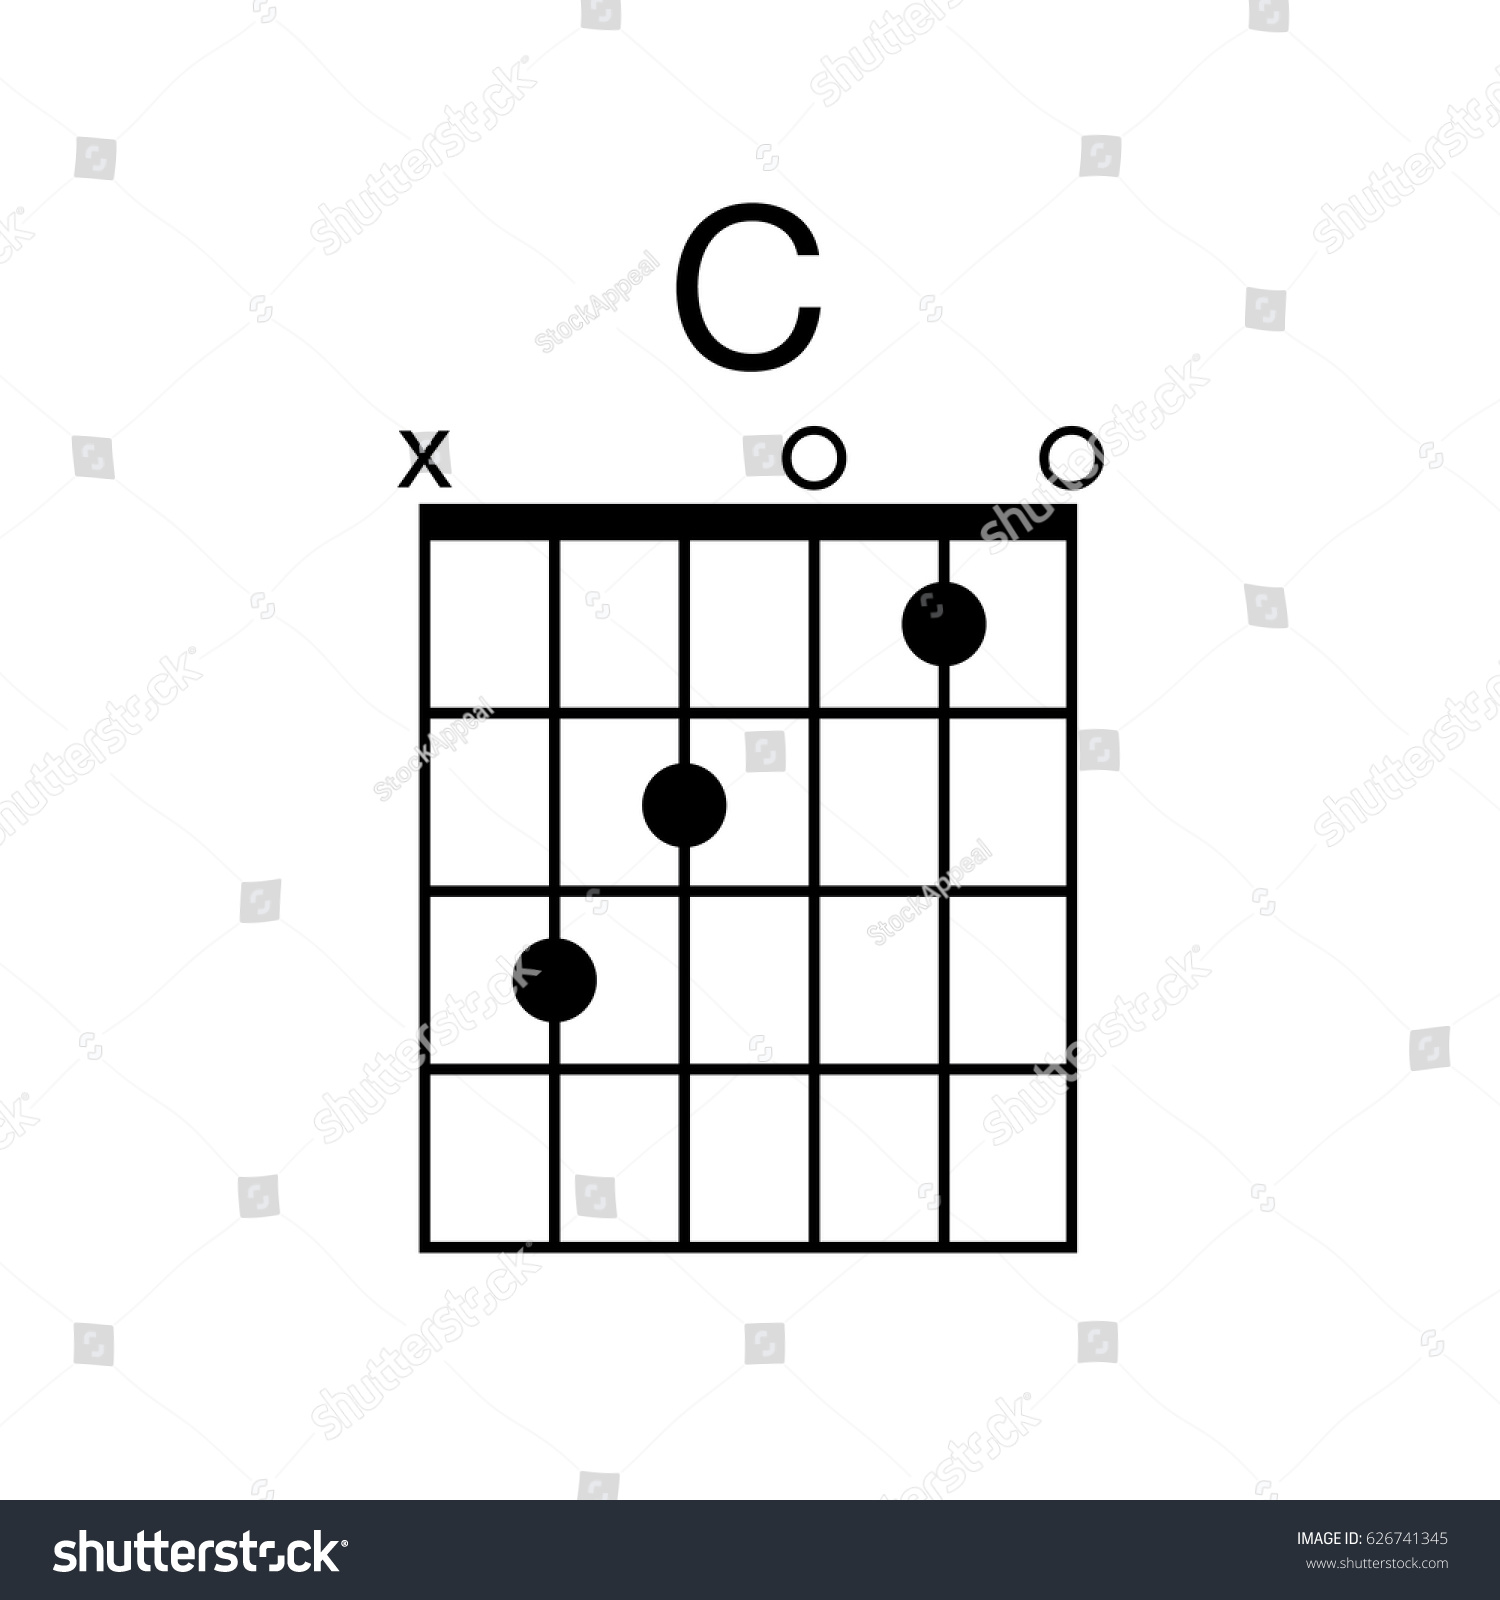 Vector guitar chord c chord diagram stock vector 626741345 vector guitar chord c chord diagram tab tabulation tablature finger chart hexwebz Choice Image